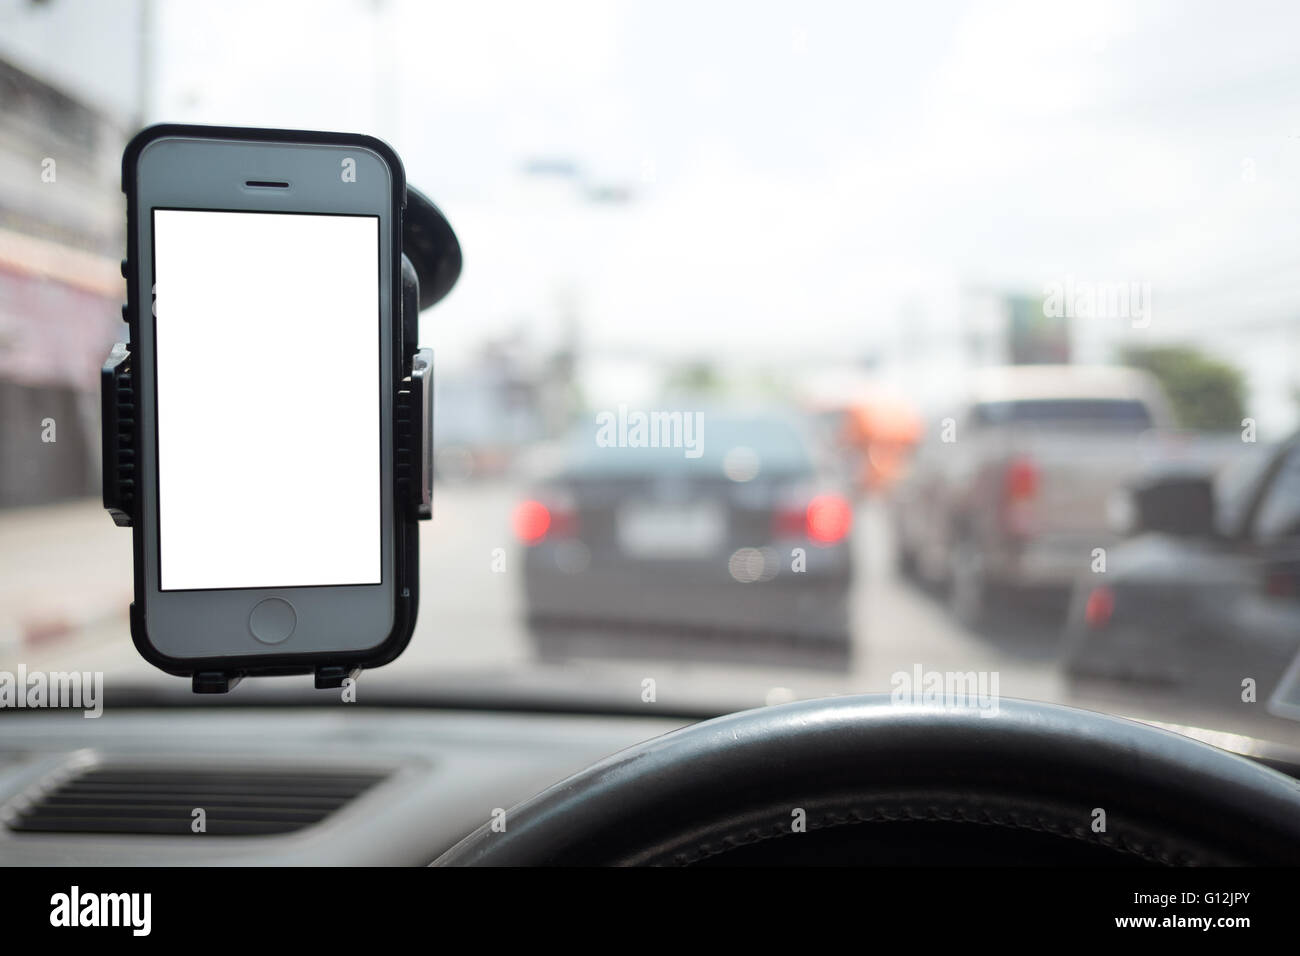 smartphone in a car  use for Navigate - Stock Image